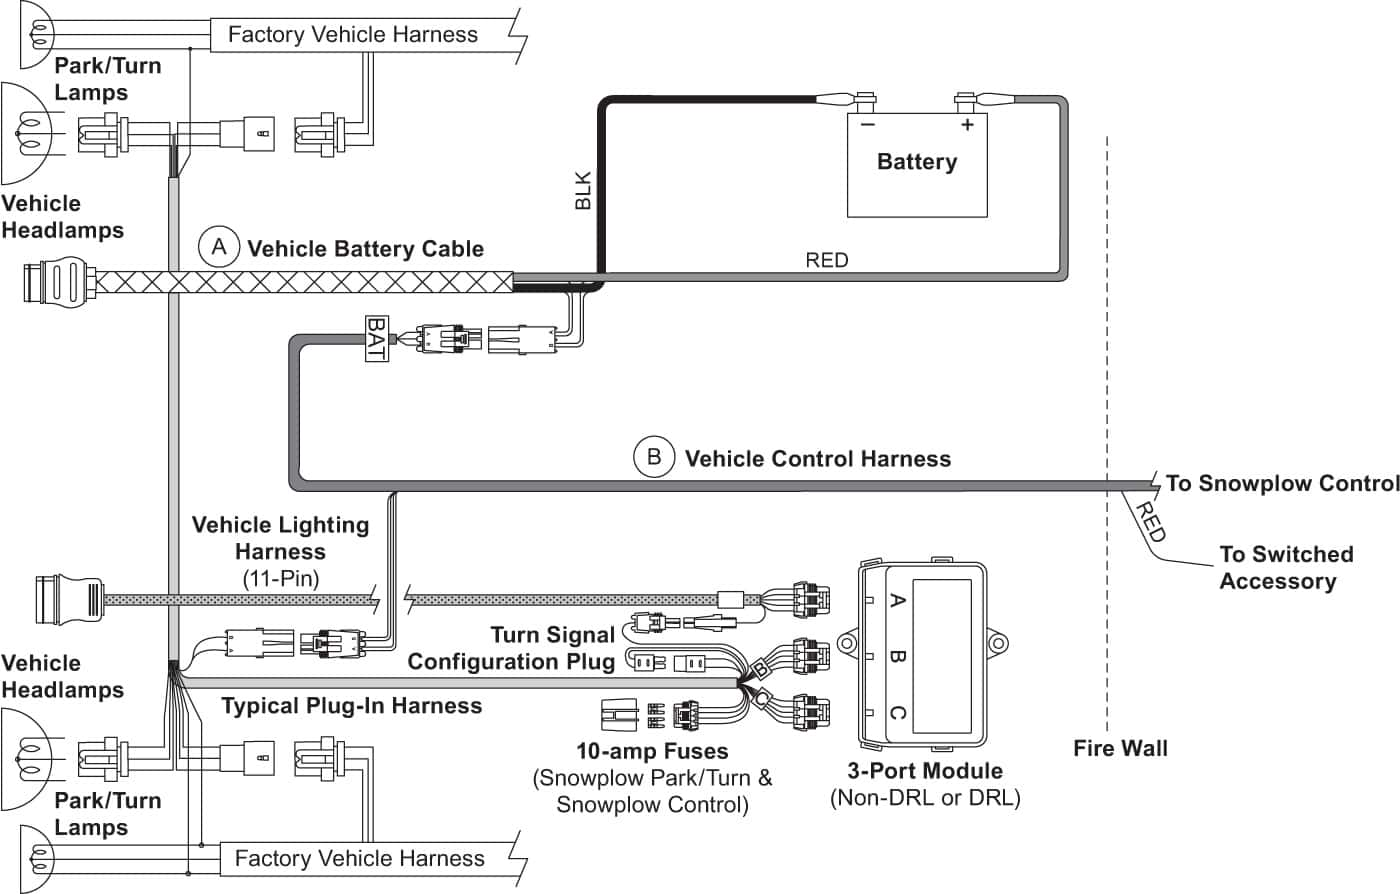 XV2 Vehicle-Side Harness (3-Port, 2-Plug) Diagram